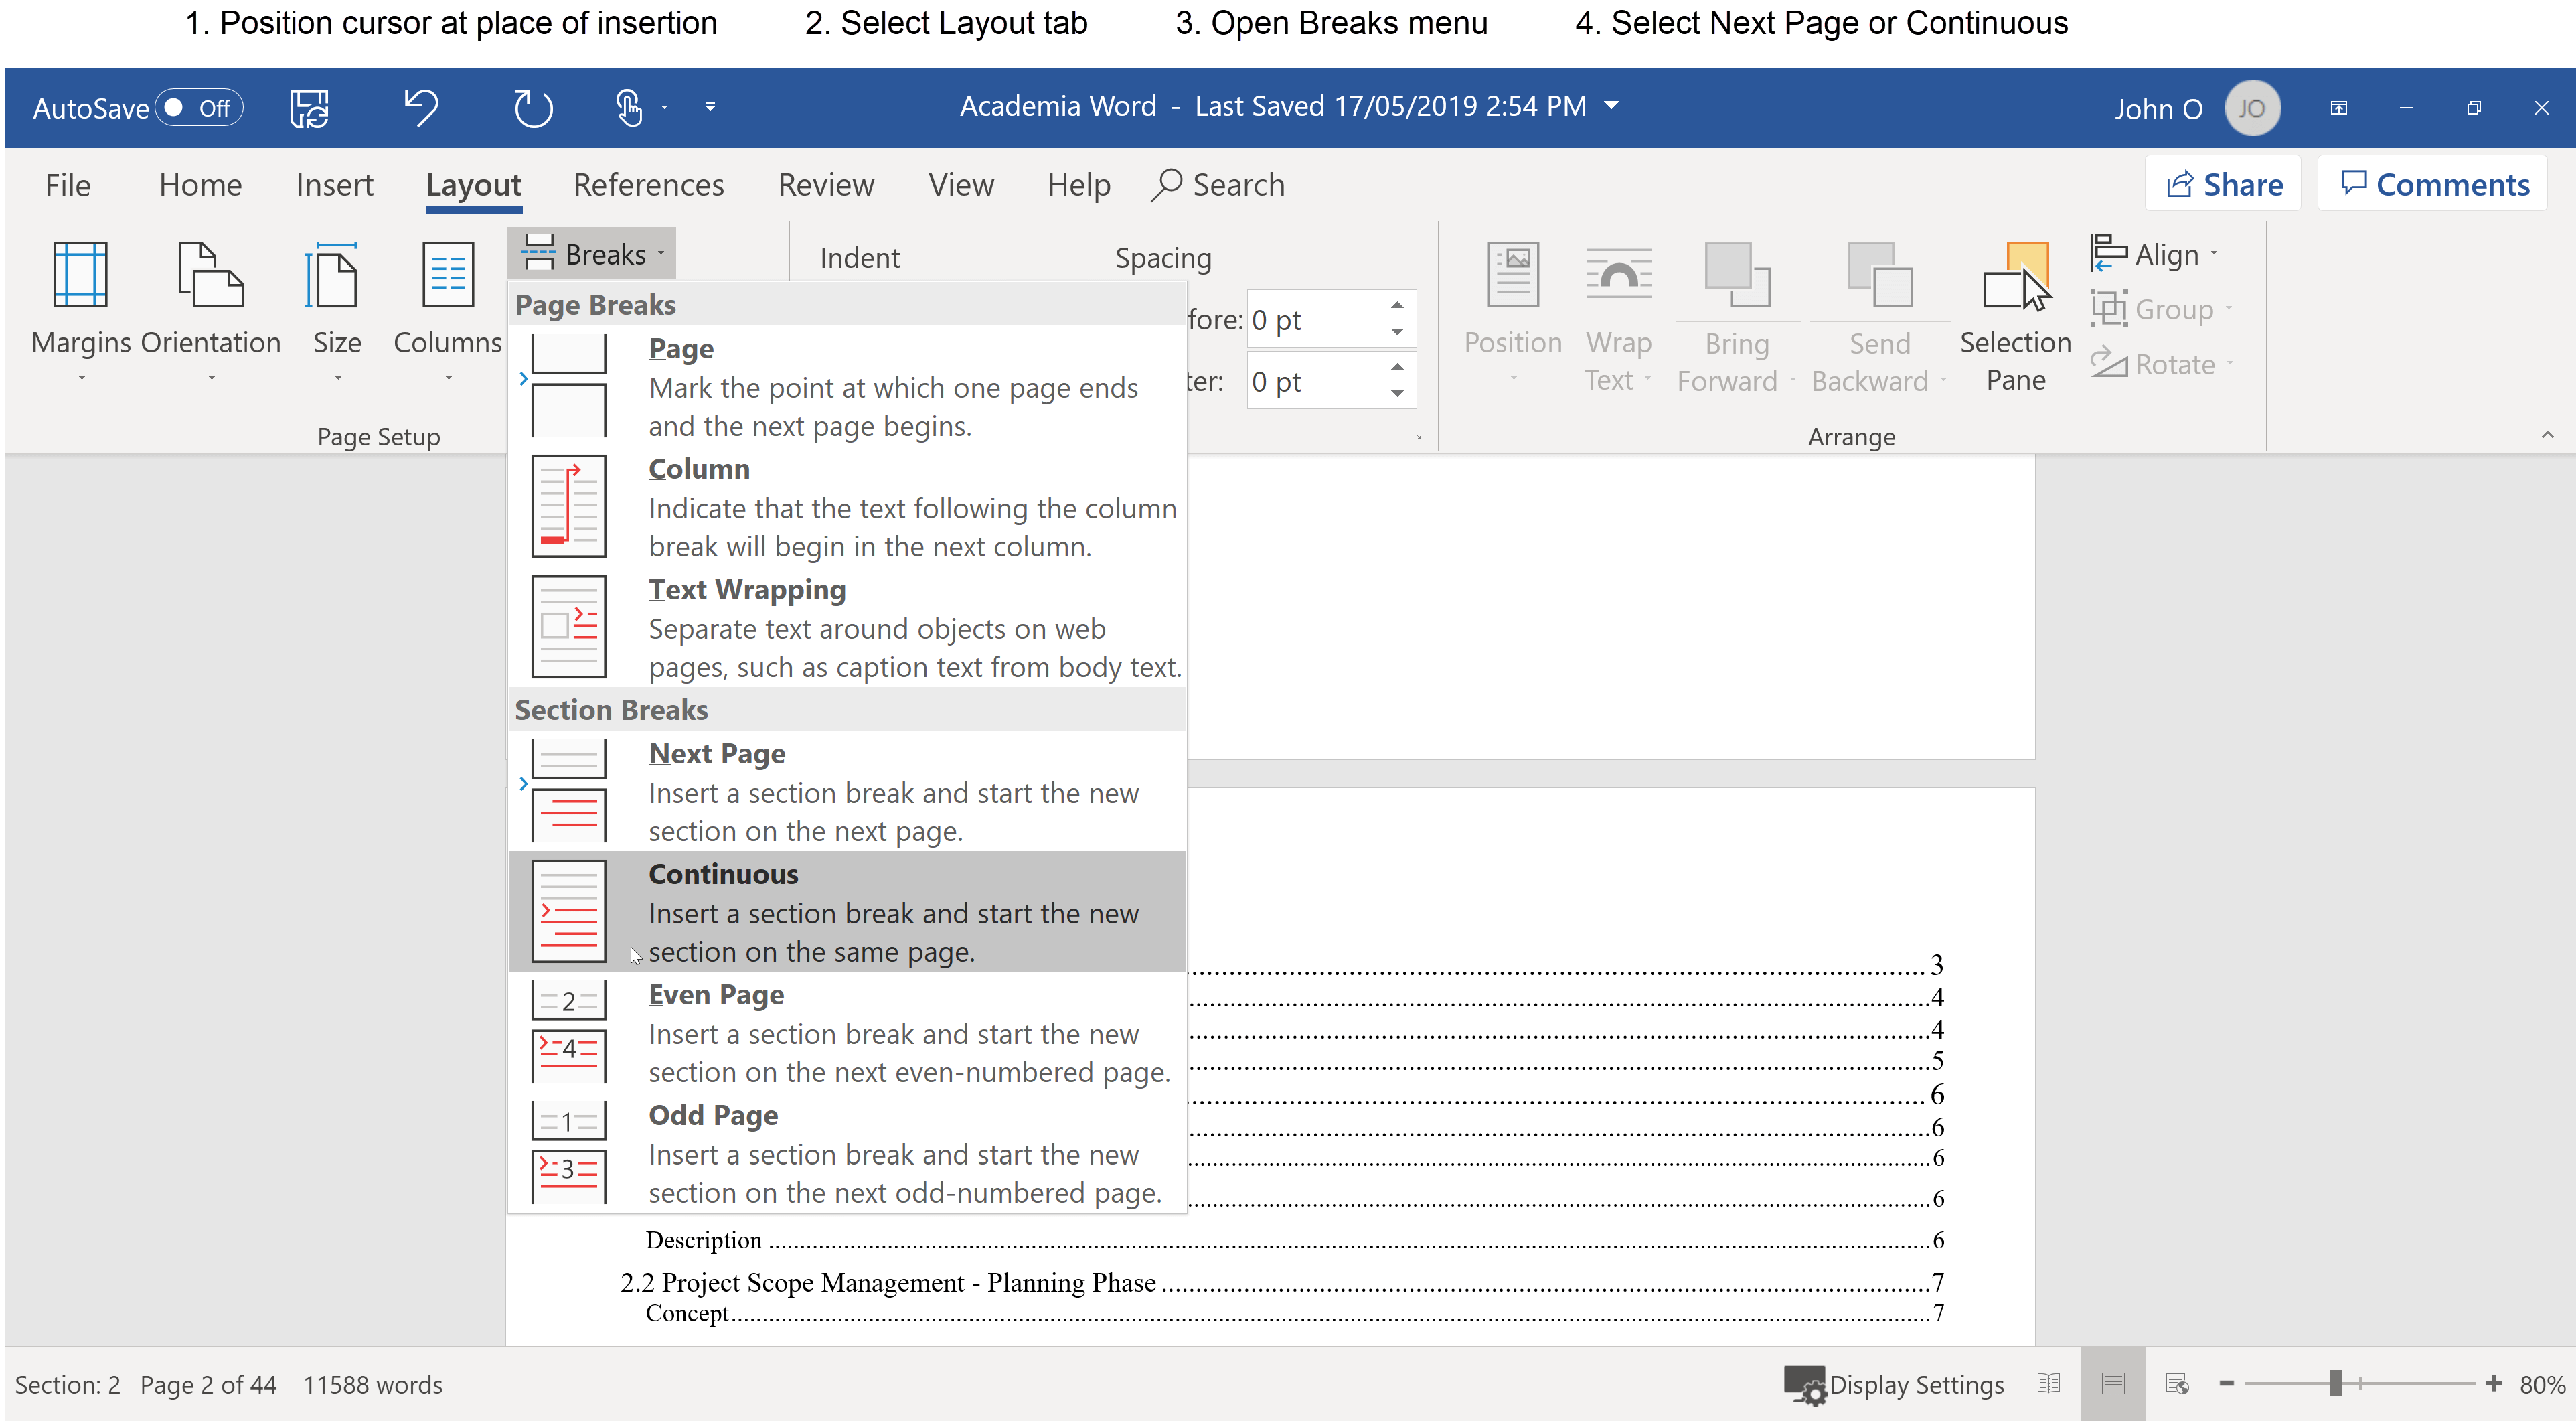 How to Insert a Section Break between the Title and the Contents Pages - 1. Position cursor where break desired 2. Select Layout tab  3.Open Breaks menu 4. Select Next Page or Continuous Section Break